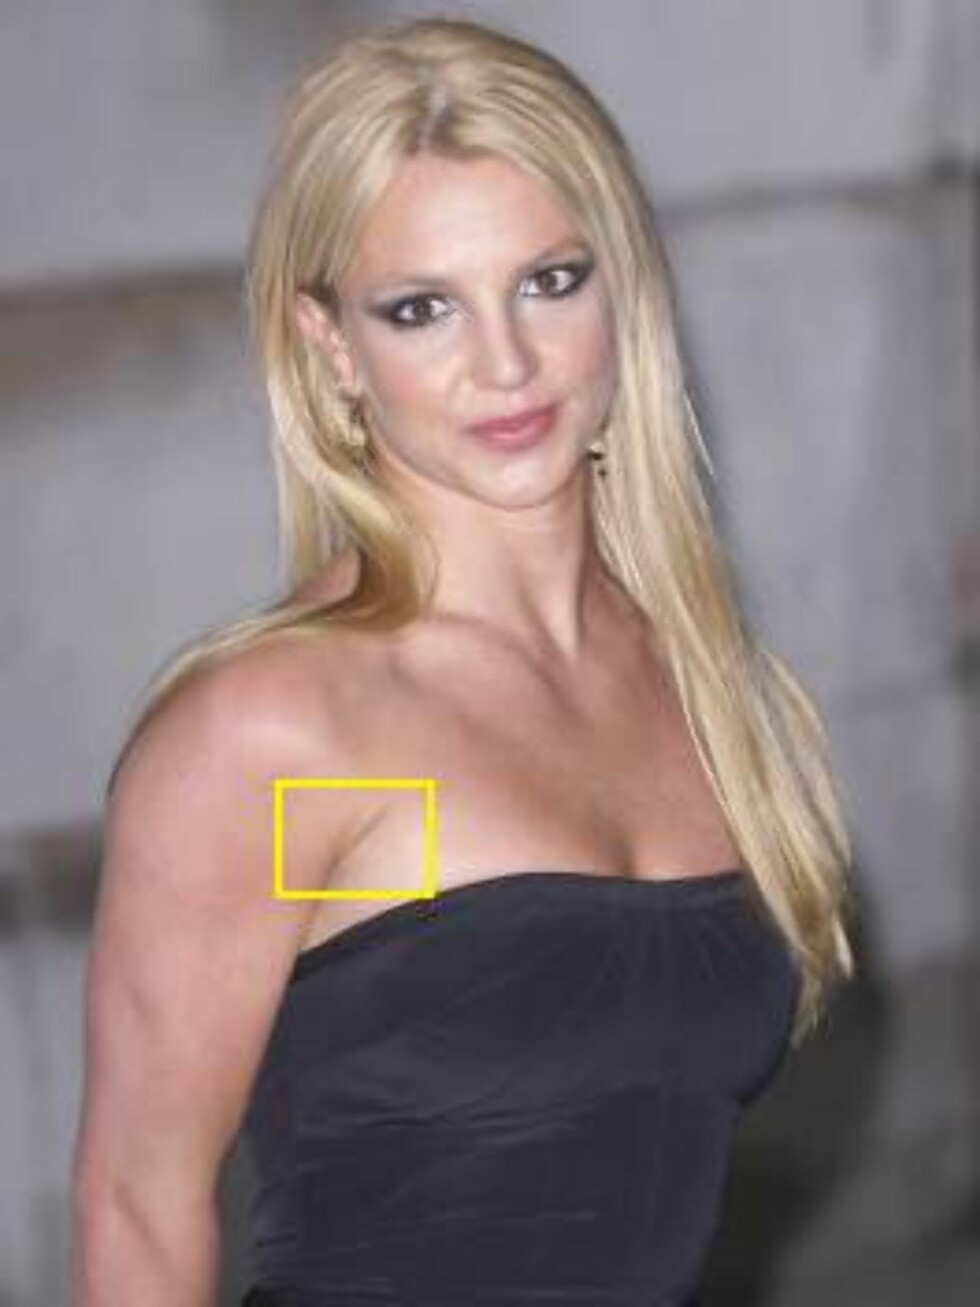 LONDON - JANUARY 26: (FILE PHOTO) Britney Spears arrives at the 'blue carpet' launch of Pepsi's new TV commecial at the National Gallery on January 26, 2004 in London. The Gladiator-style advert stars Enrique Iglesias in the role of evil emperor with Pink Foto: All Over Press